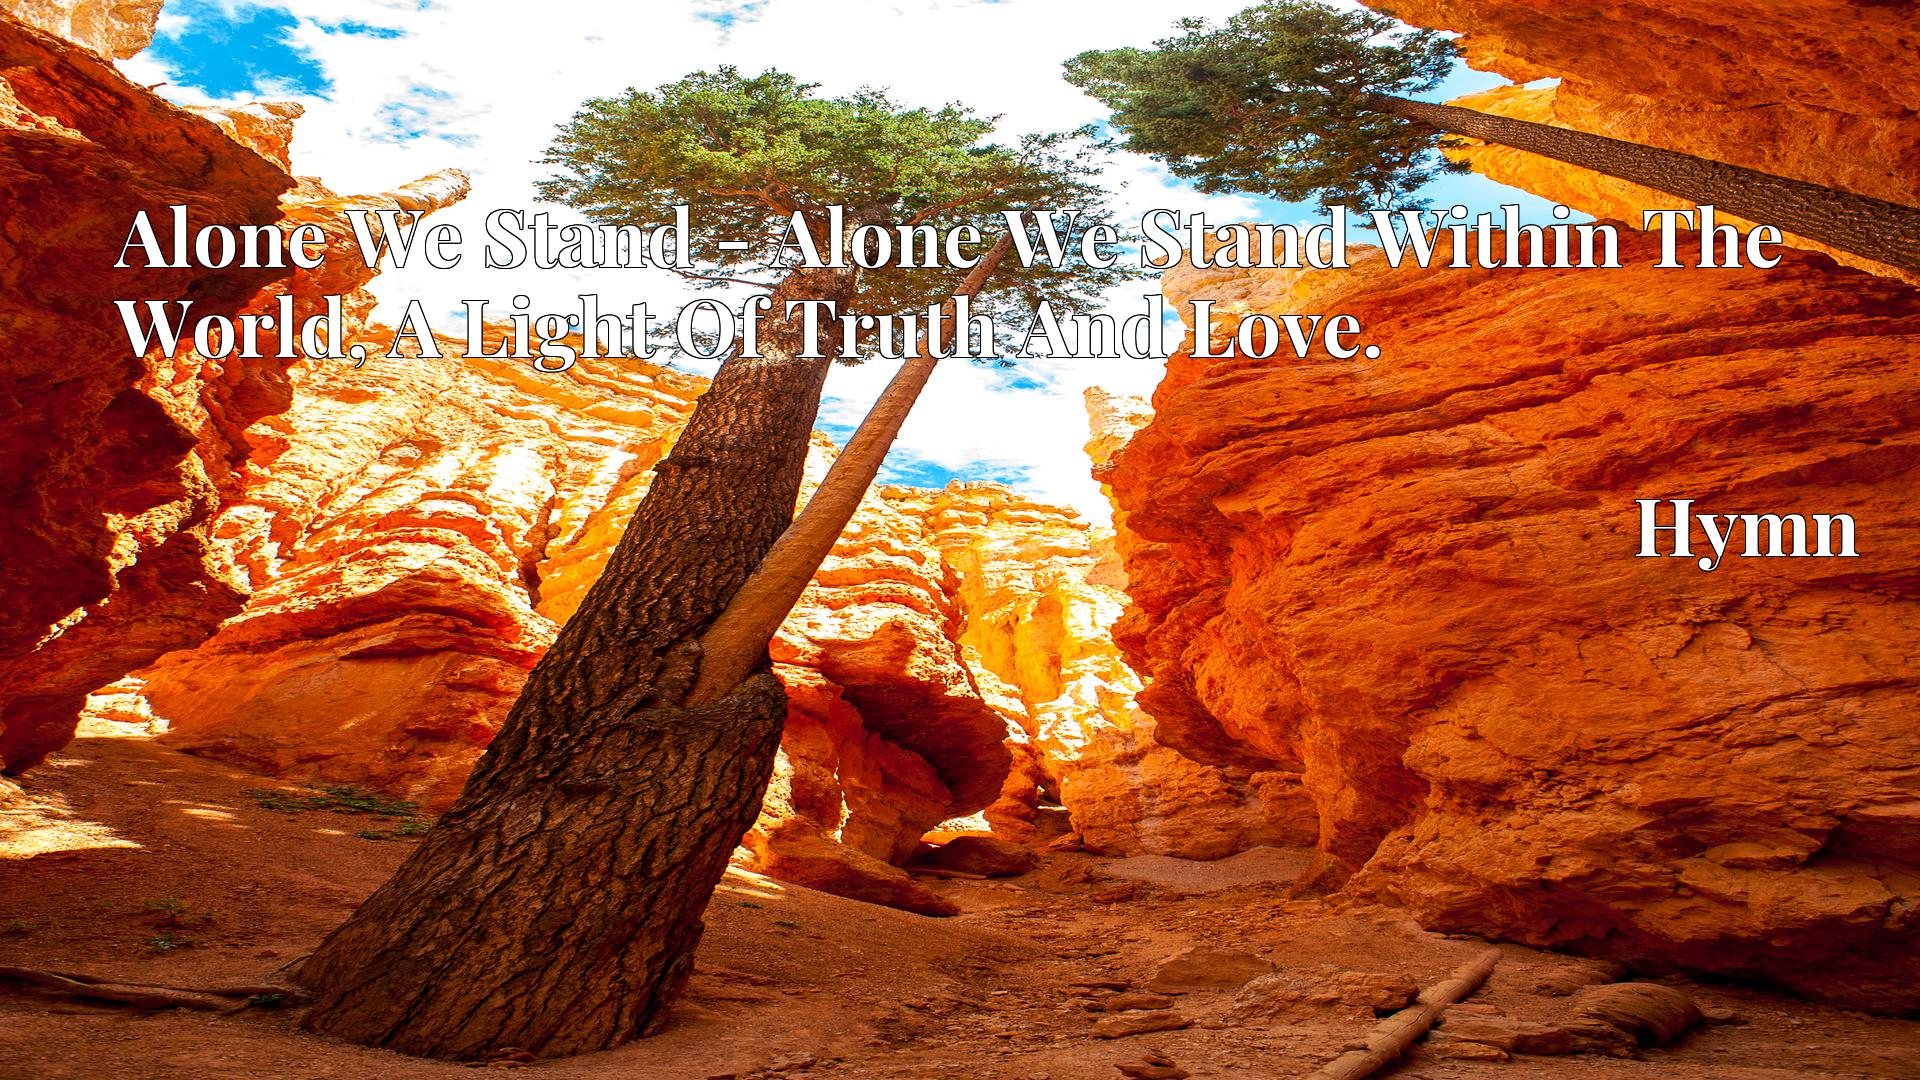 Alone We Stand - Alone We Stand Within The World, A Light Of Truth And Love. - Hymn